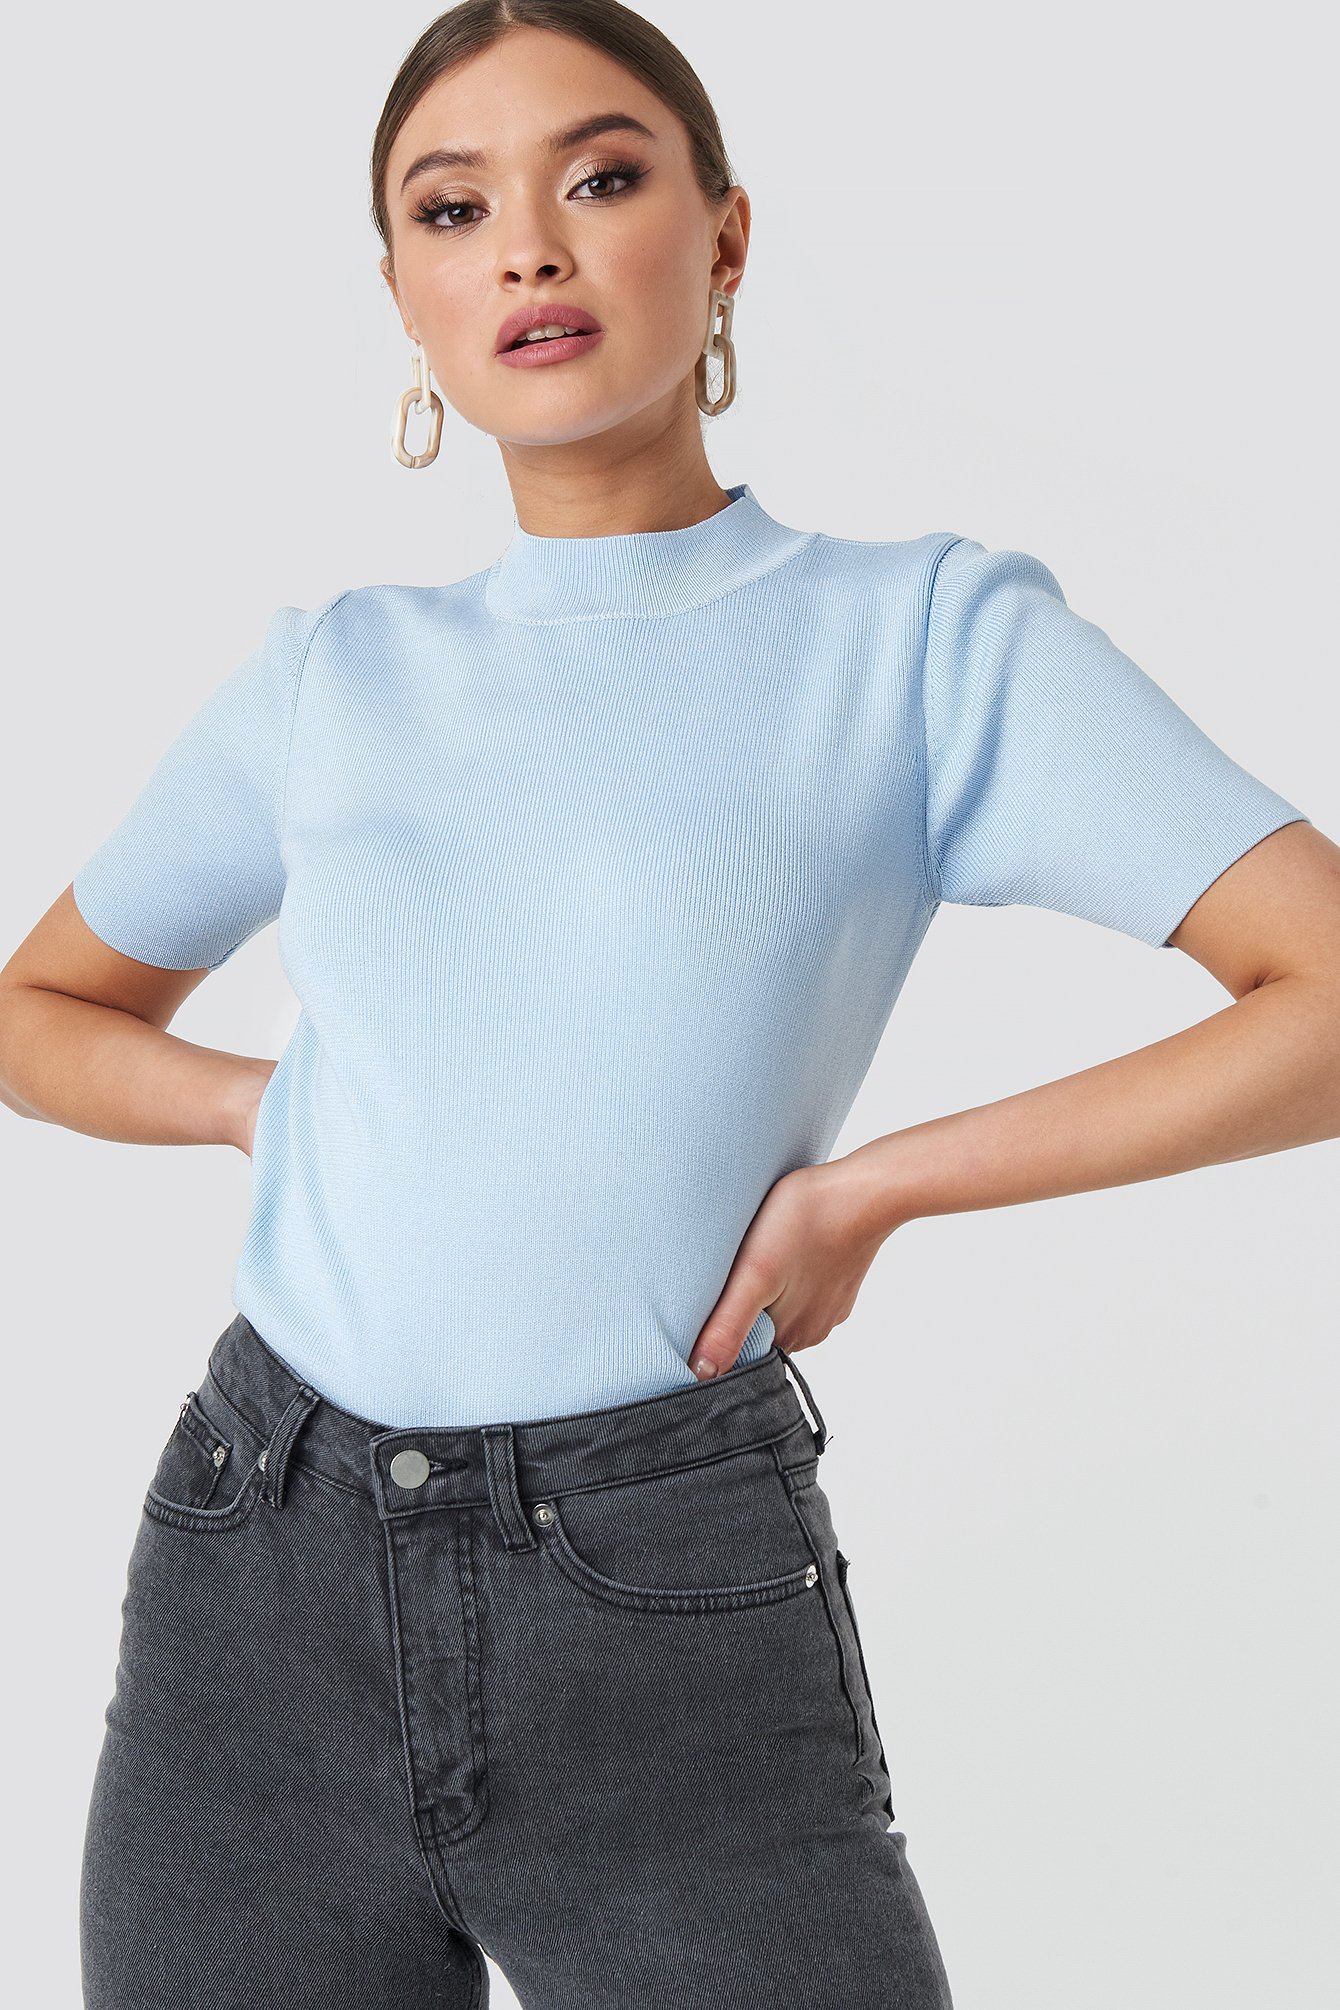 mango -  Estef Top - Blue